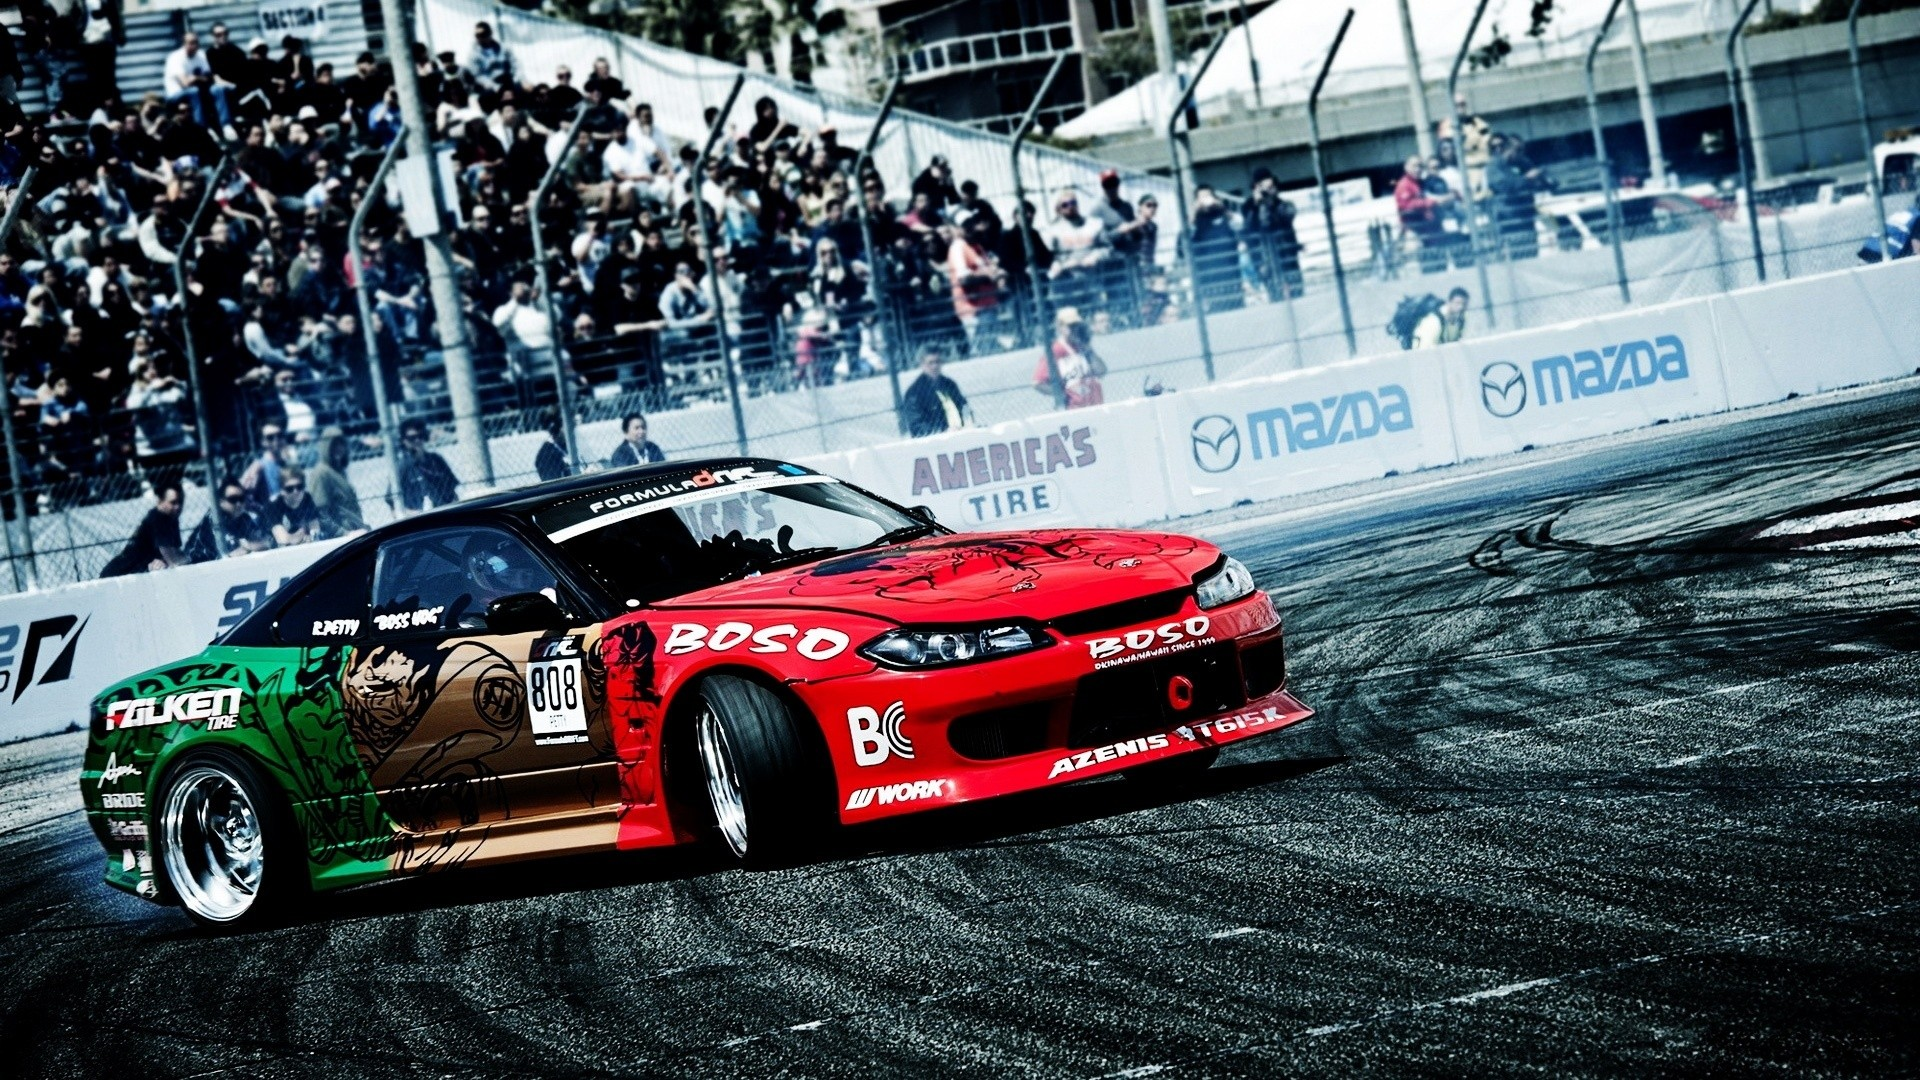 Cars Drift Wallpaper 1920x1080 Cars, Drift, Nissan, Silvia, Drifting